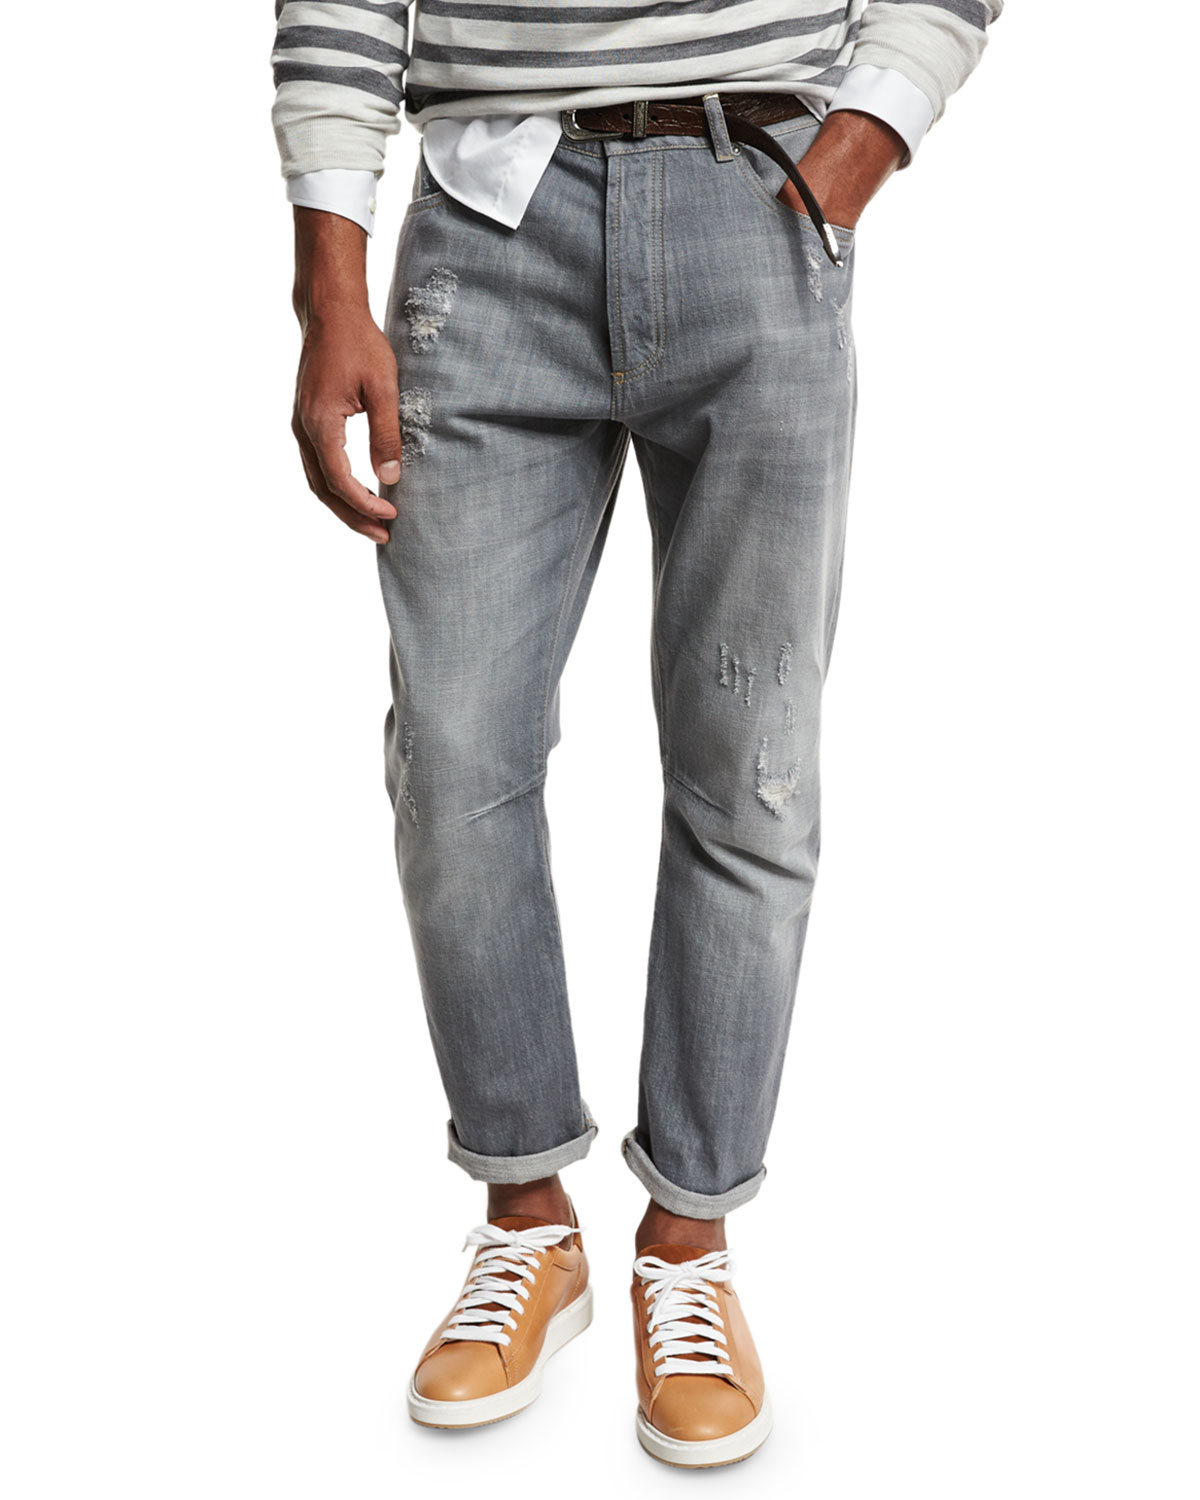 Leisure-Fit Distressed Denim Jeans, Gray